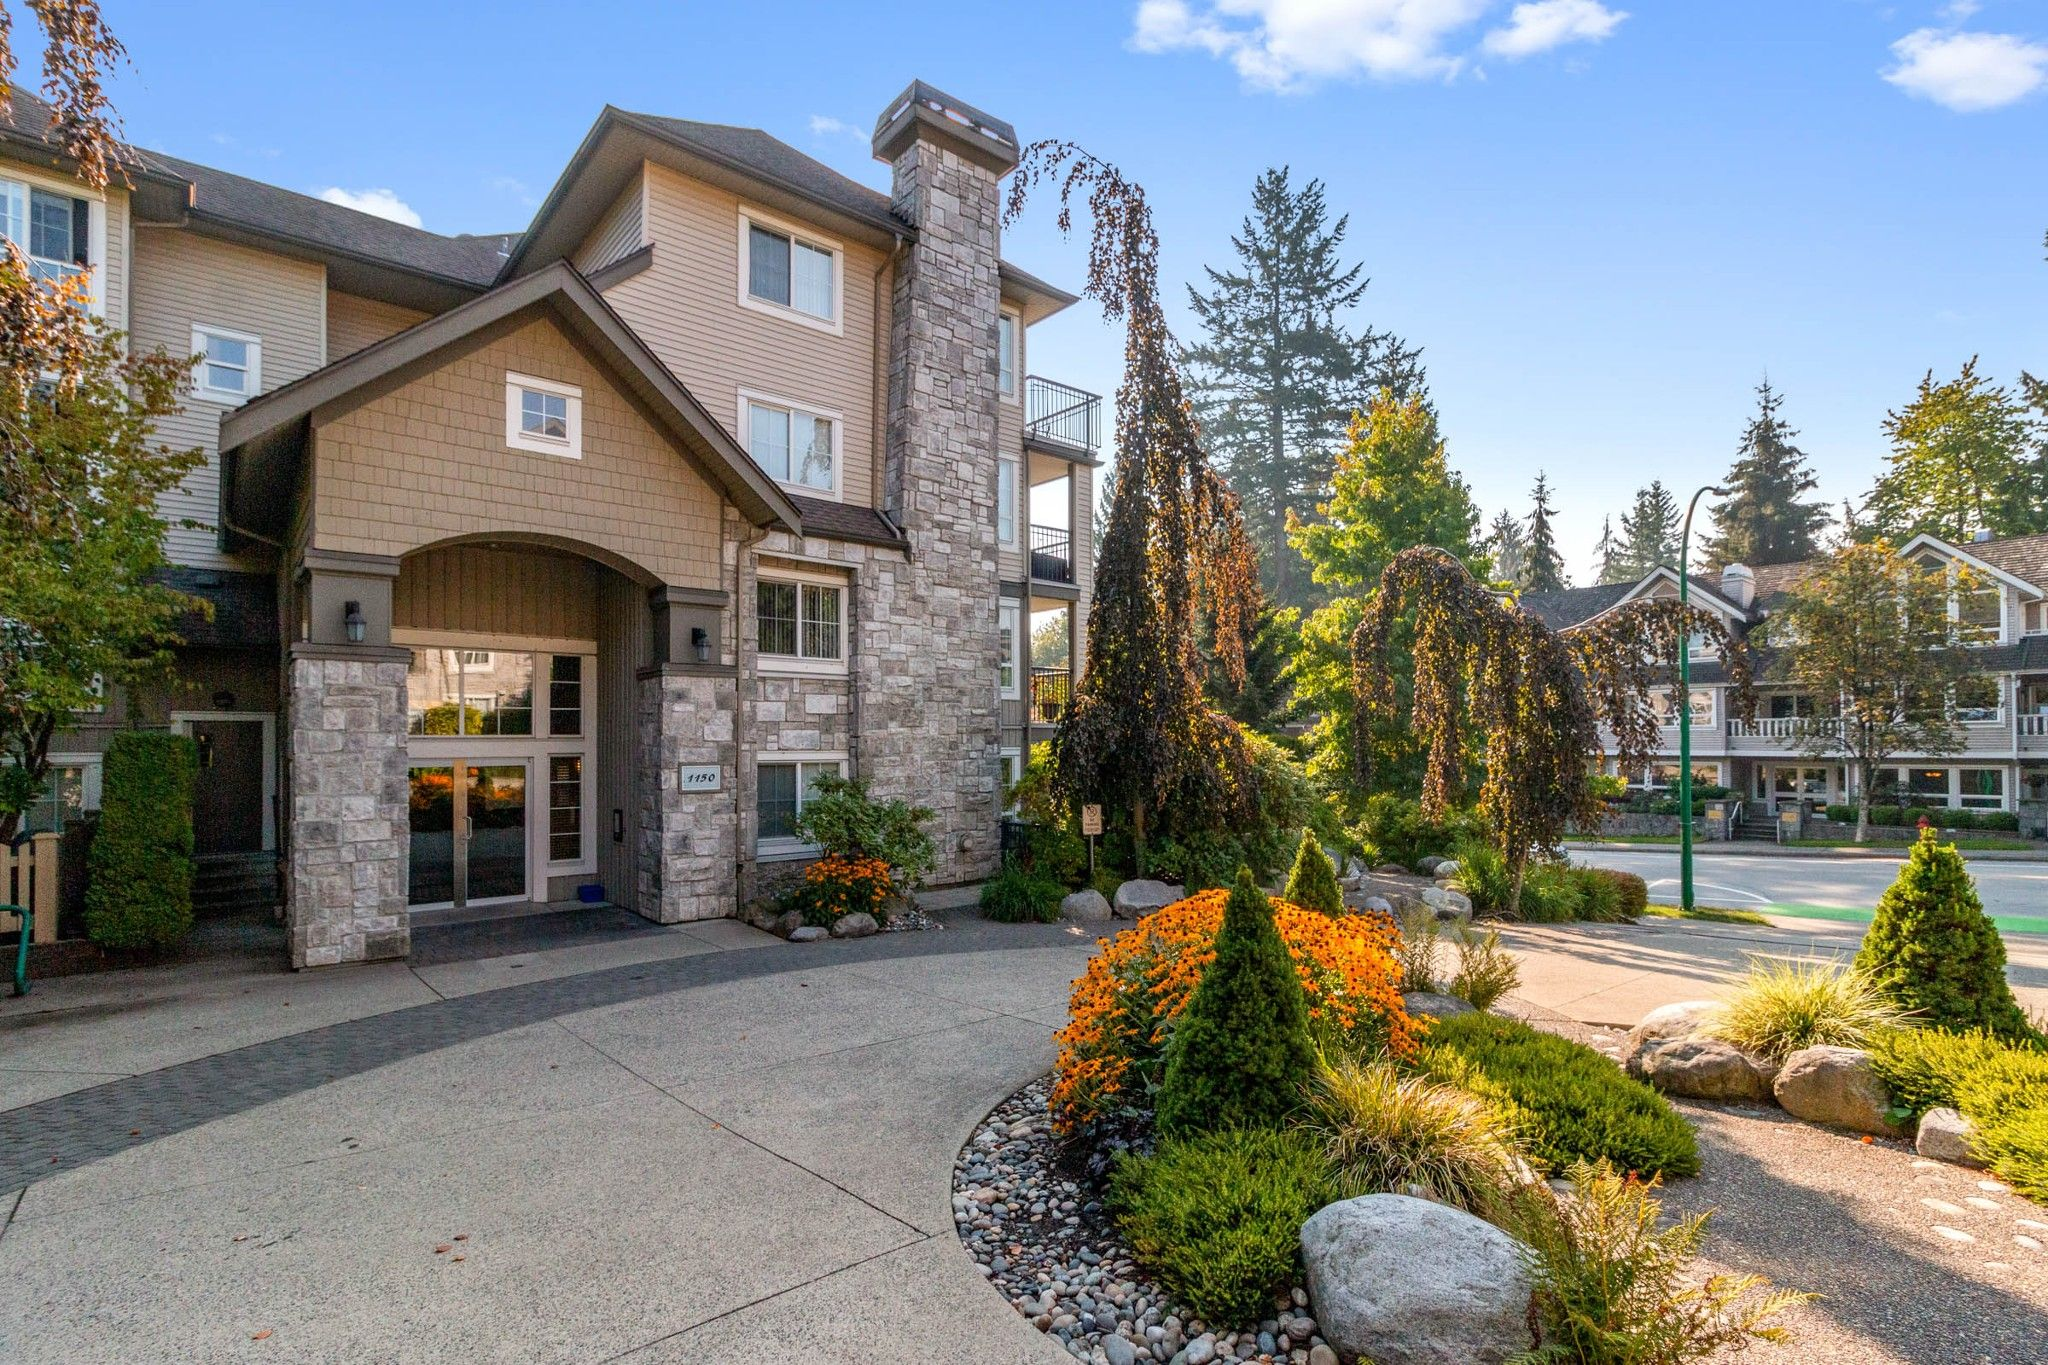 """Main Photo: 305 1150 E 29TH Street in North Vancouver: Lynn Valley Condo for sale in """"Highgate"""" : MLS®# R2497351"""